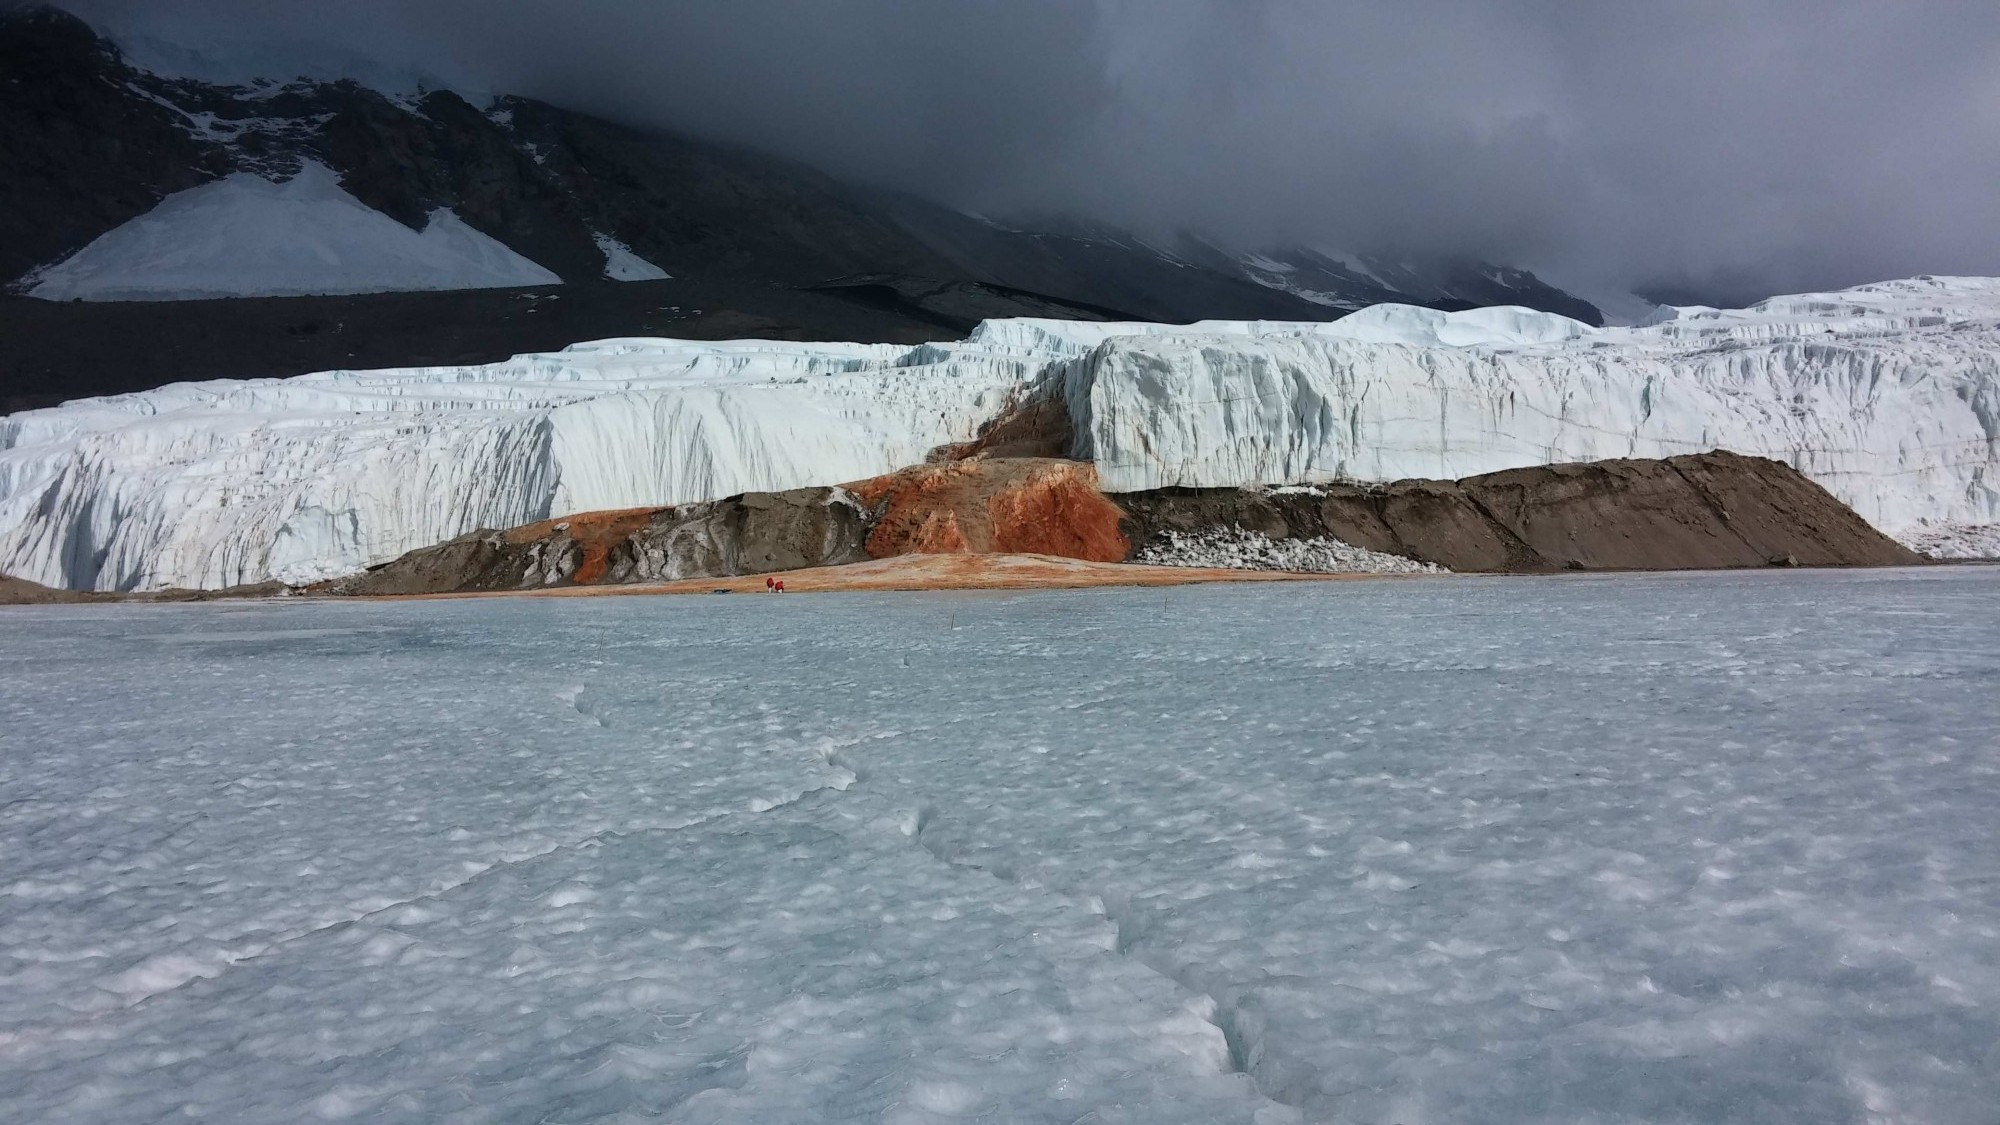 Blood Falls, the unique red-hued liquid emerging from below the surface of Antarctica's dry valleys is connected to brines beneath, according to recently published findings. Credit: Jill Mikucki, 2014.